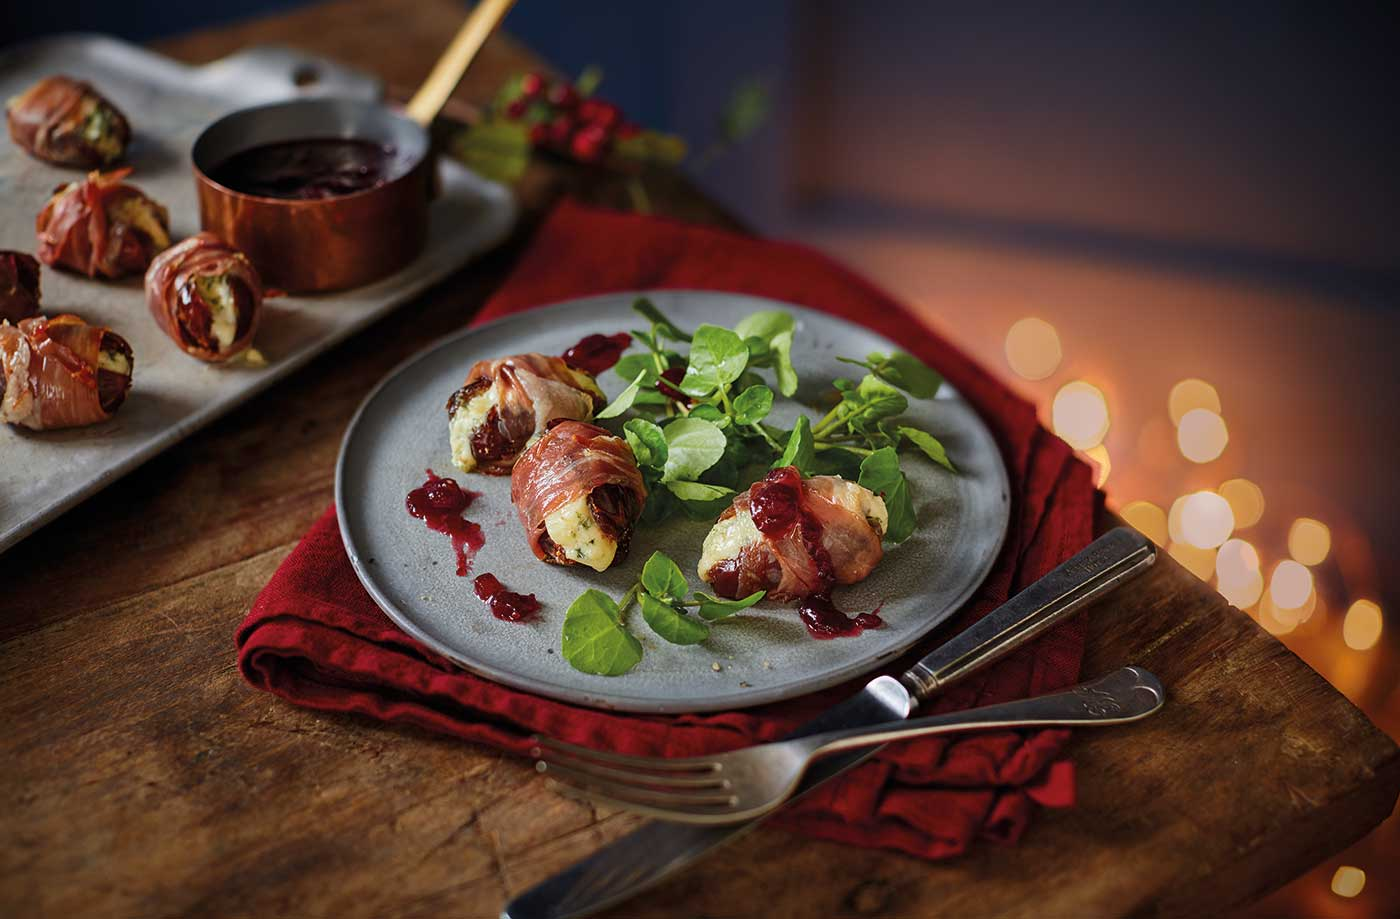 Prosciutto wrapped dates with port and cranberry sauce